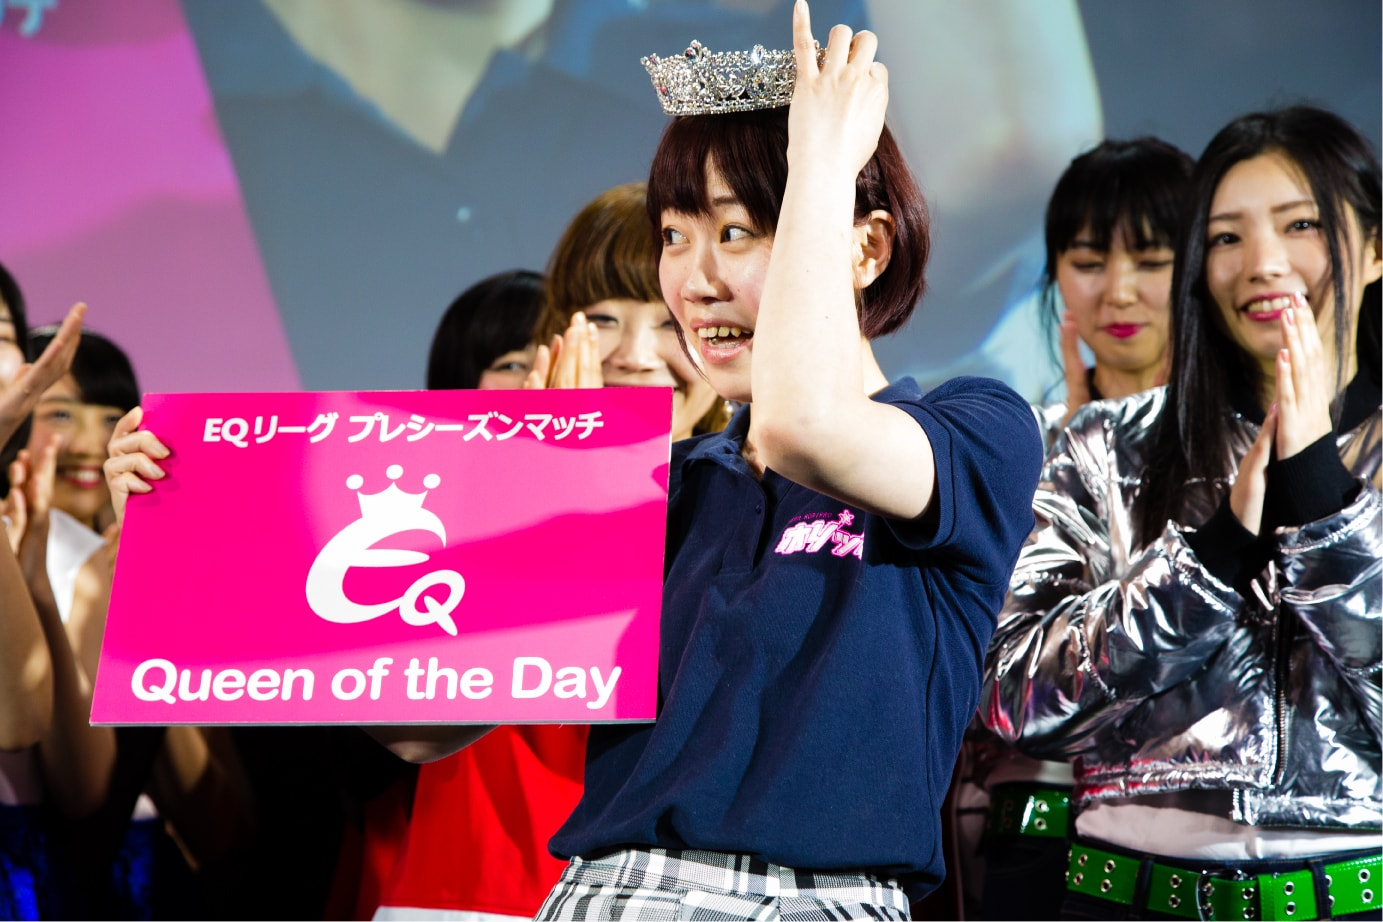 Queen of the Dayが選出